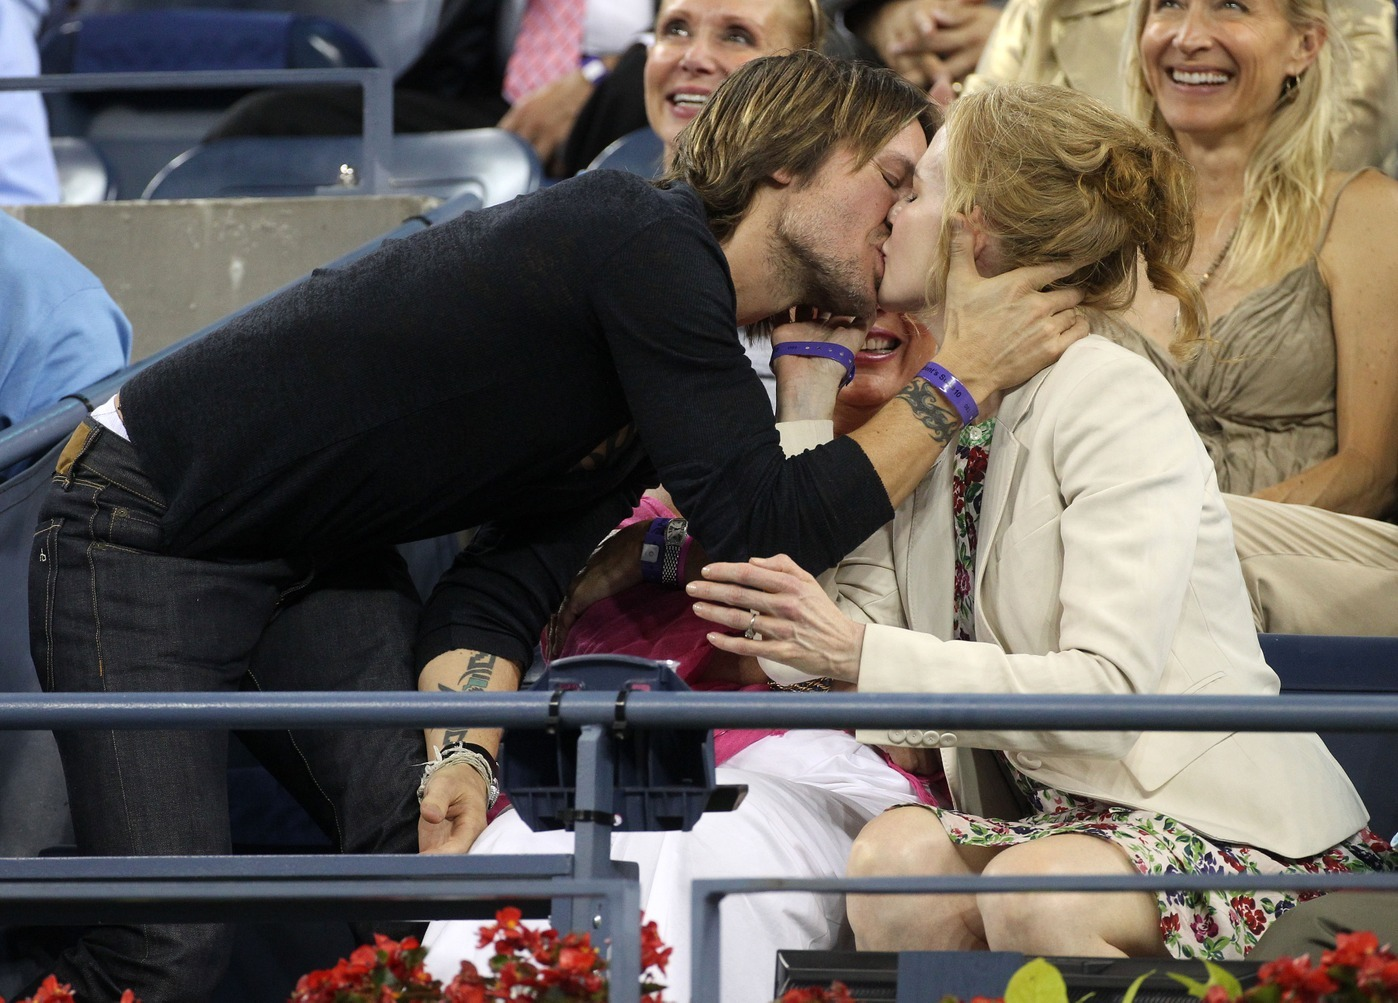 Nicole Kidman and Keith Urban PDA